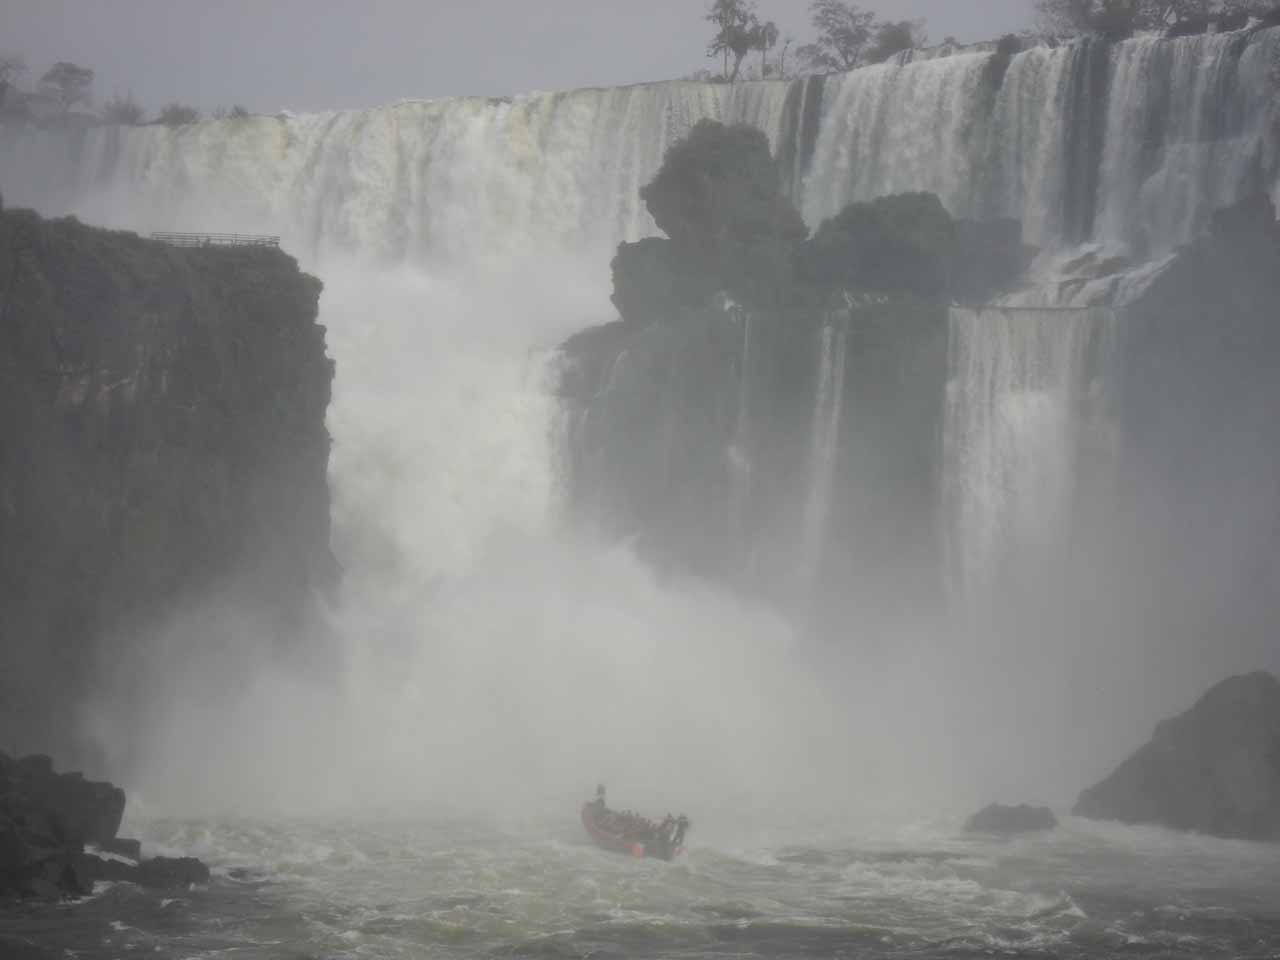 A boat getting drenched under Salto San Martin